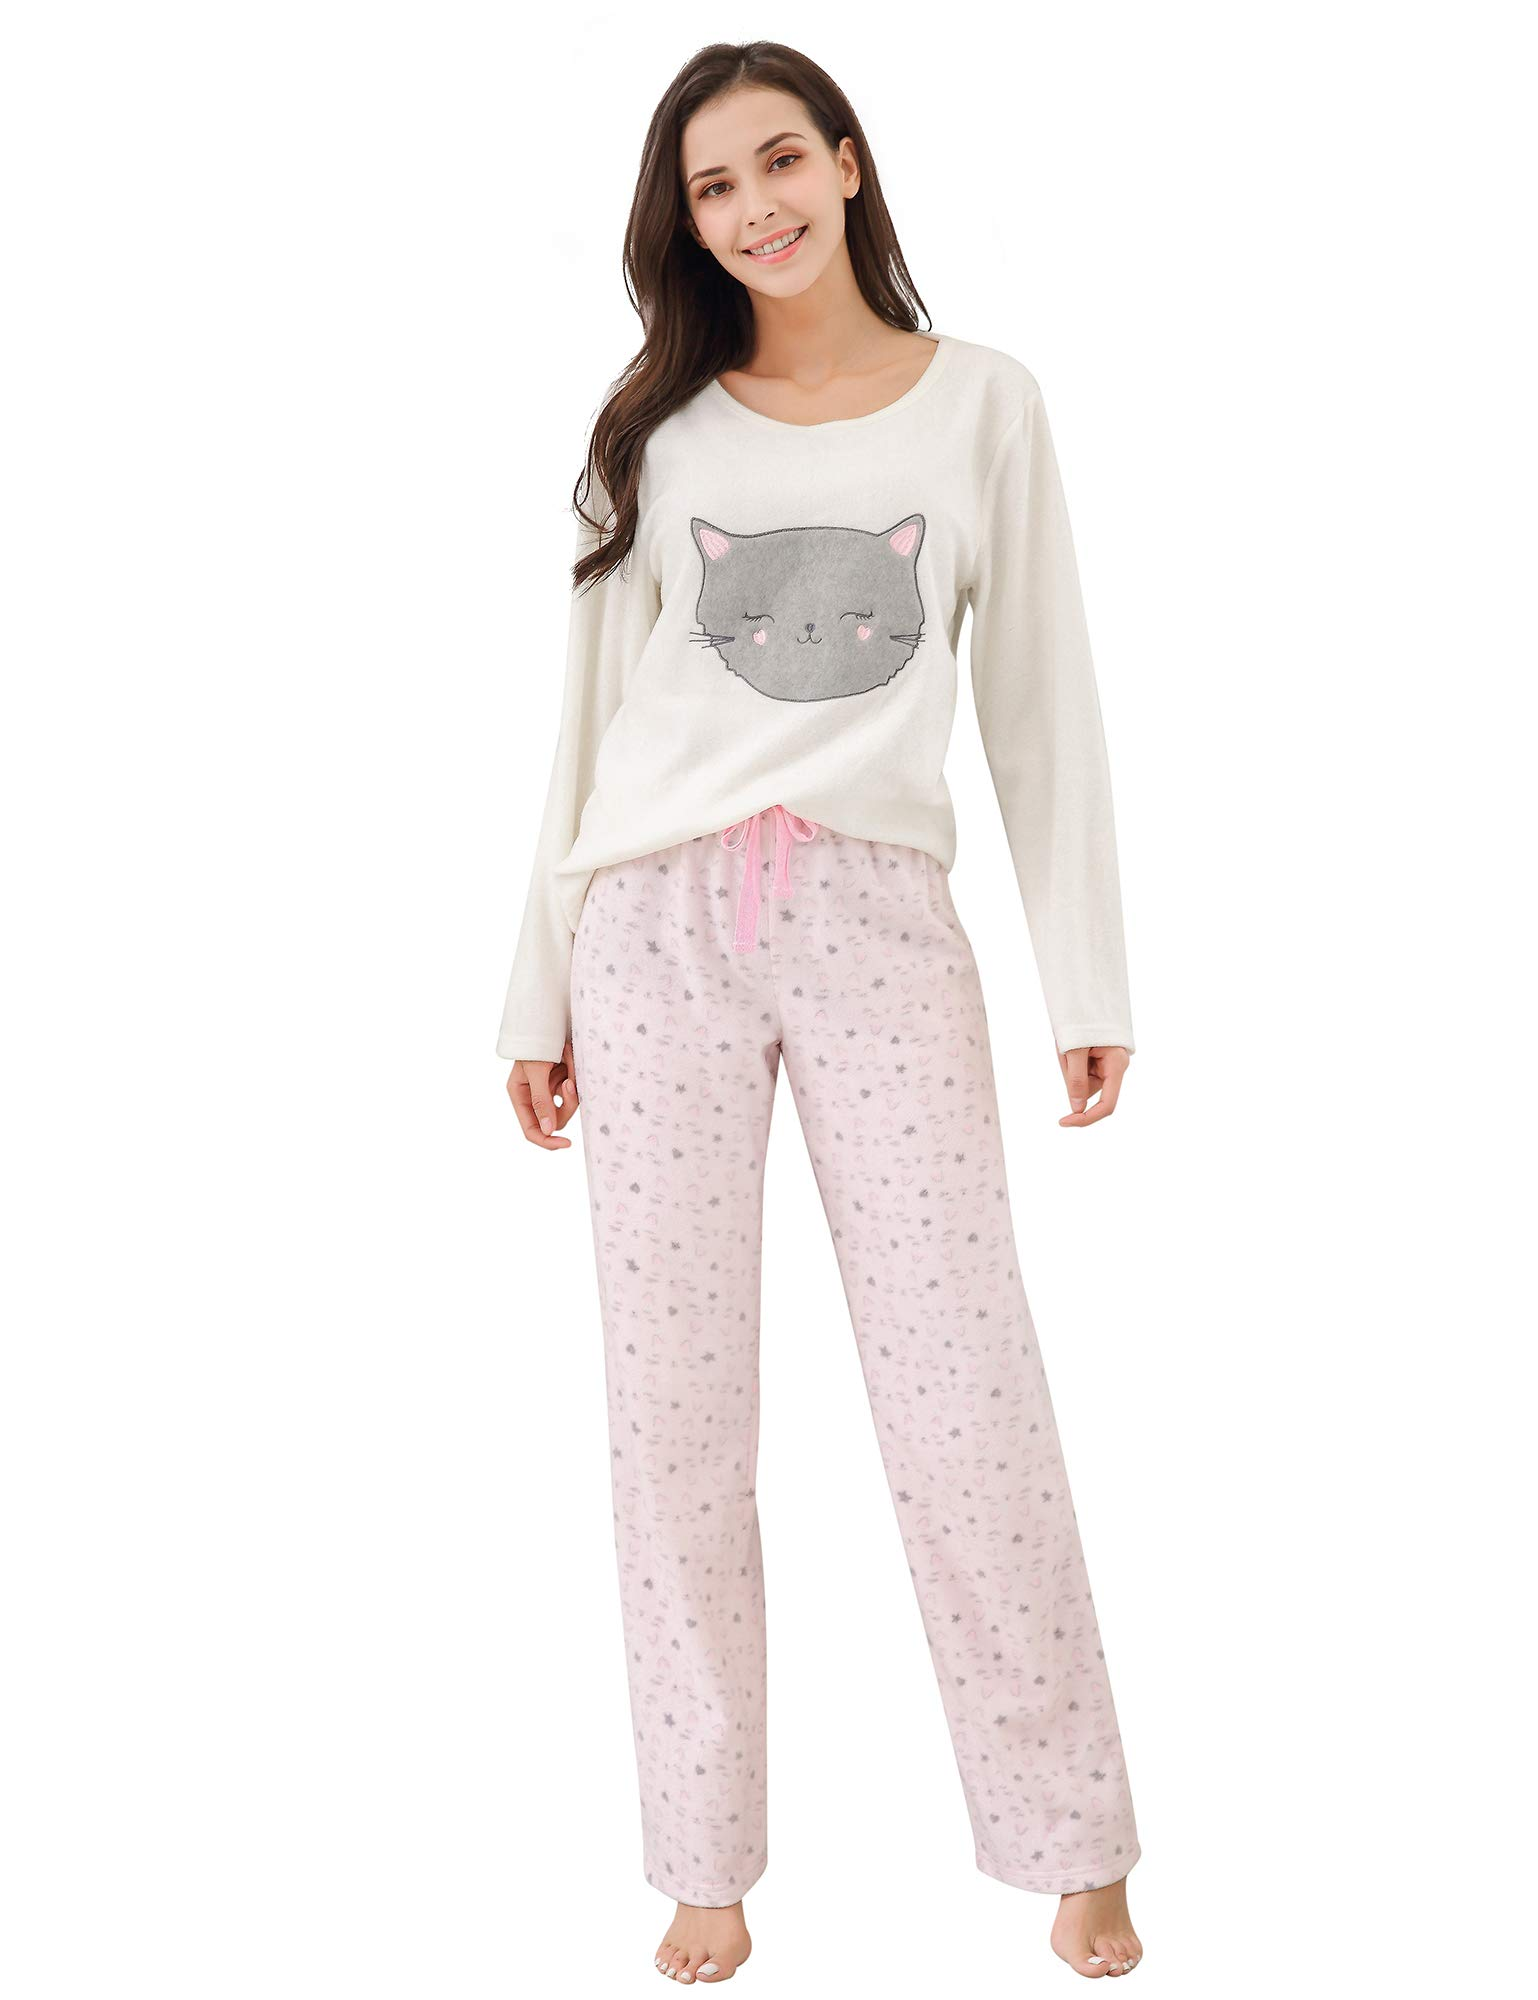 beefa59ed493 Richie House Women's Soft and Warm Fleece Two-Piece Set Size S-XL RHW2773